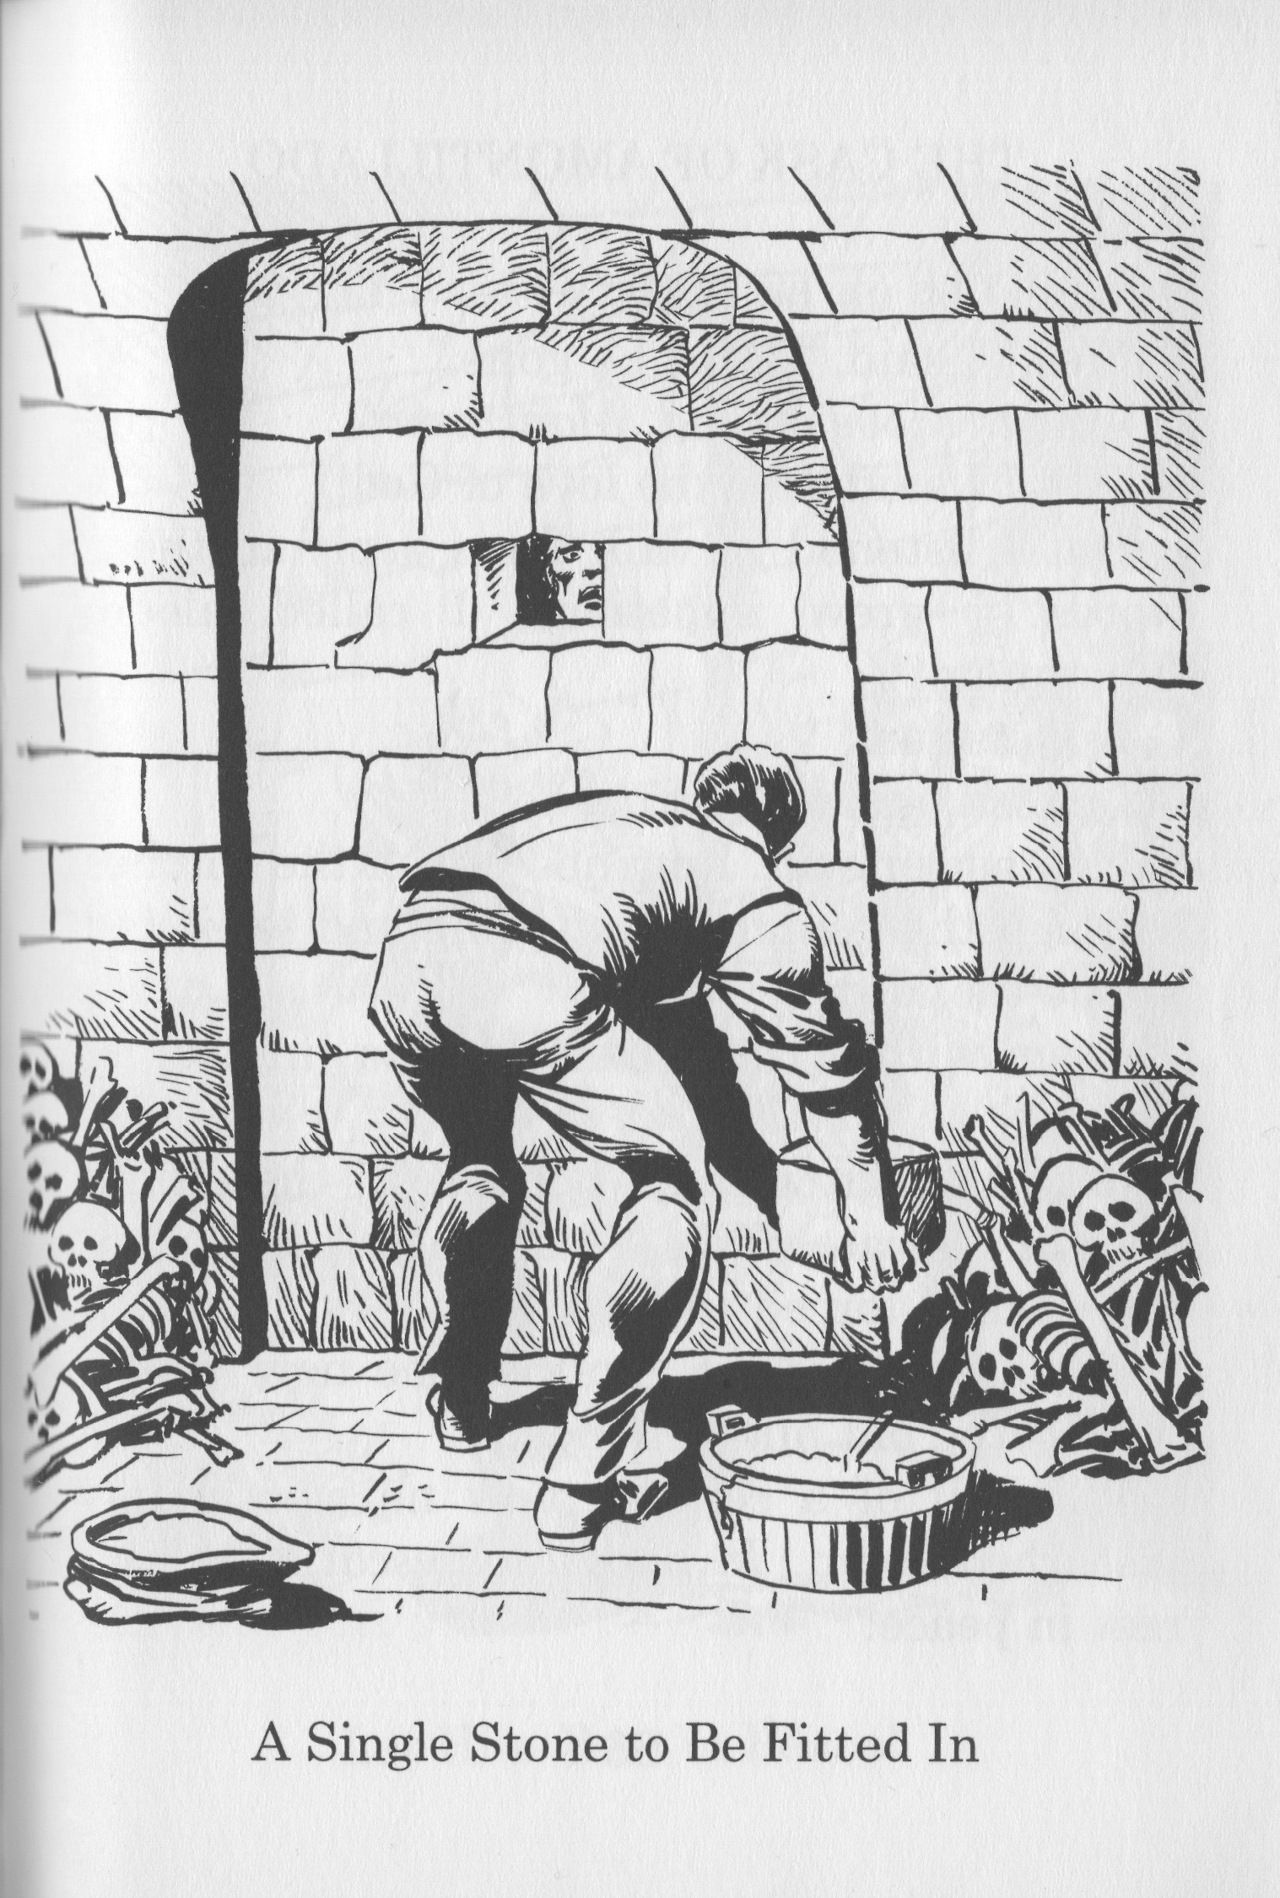 worksheet The Cask Of Amontillado Worksheet the cask of amontillado edgar allan poe pinterest amontillado